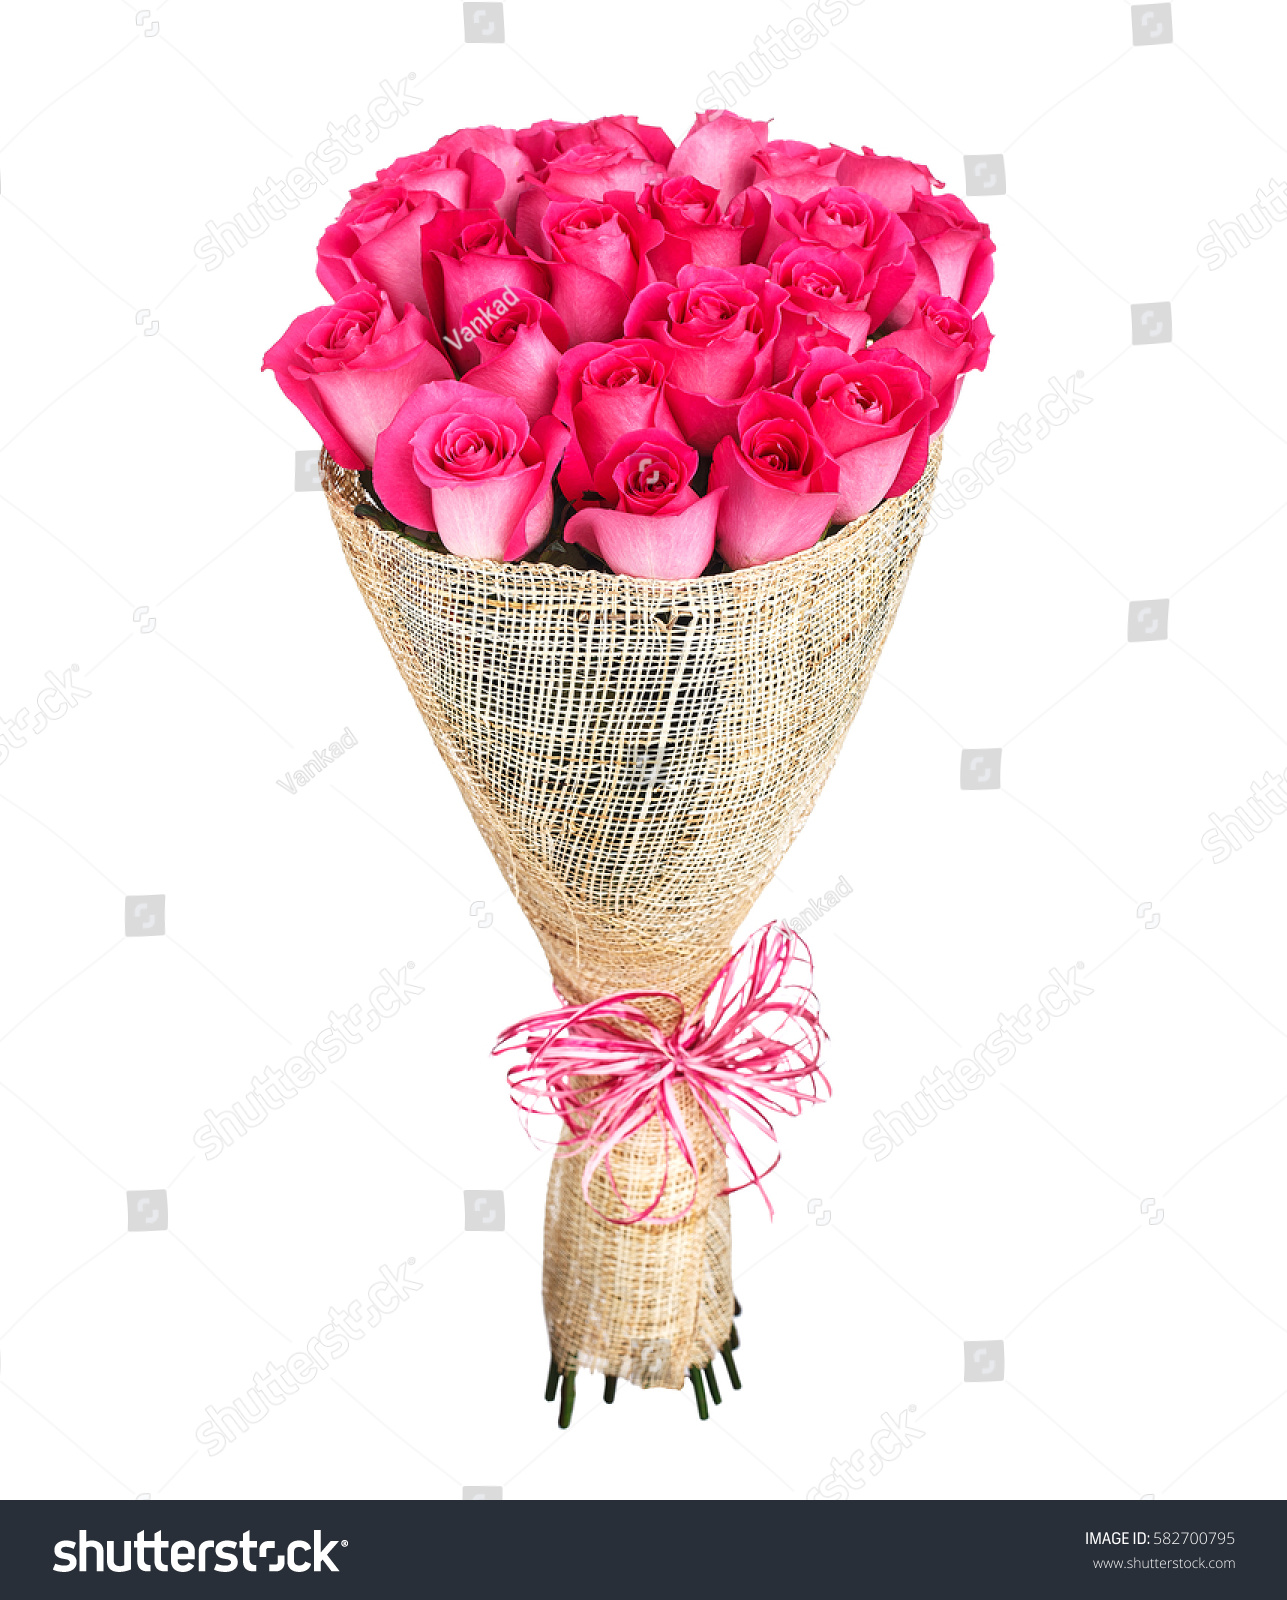 Flower Bouquet Pink Roses Stock Photo Edit Now 582700795